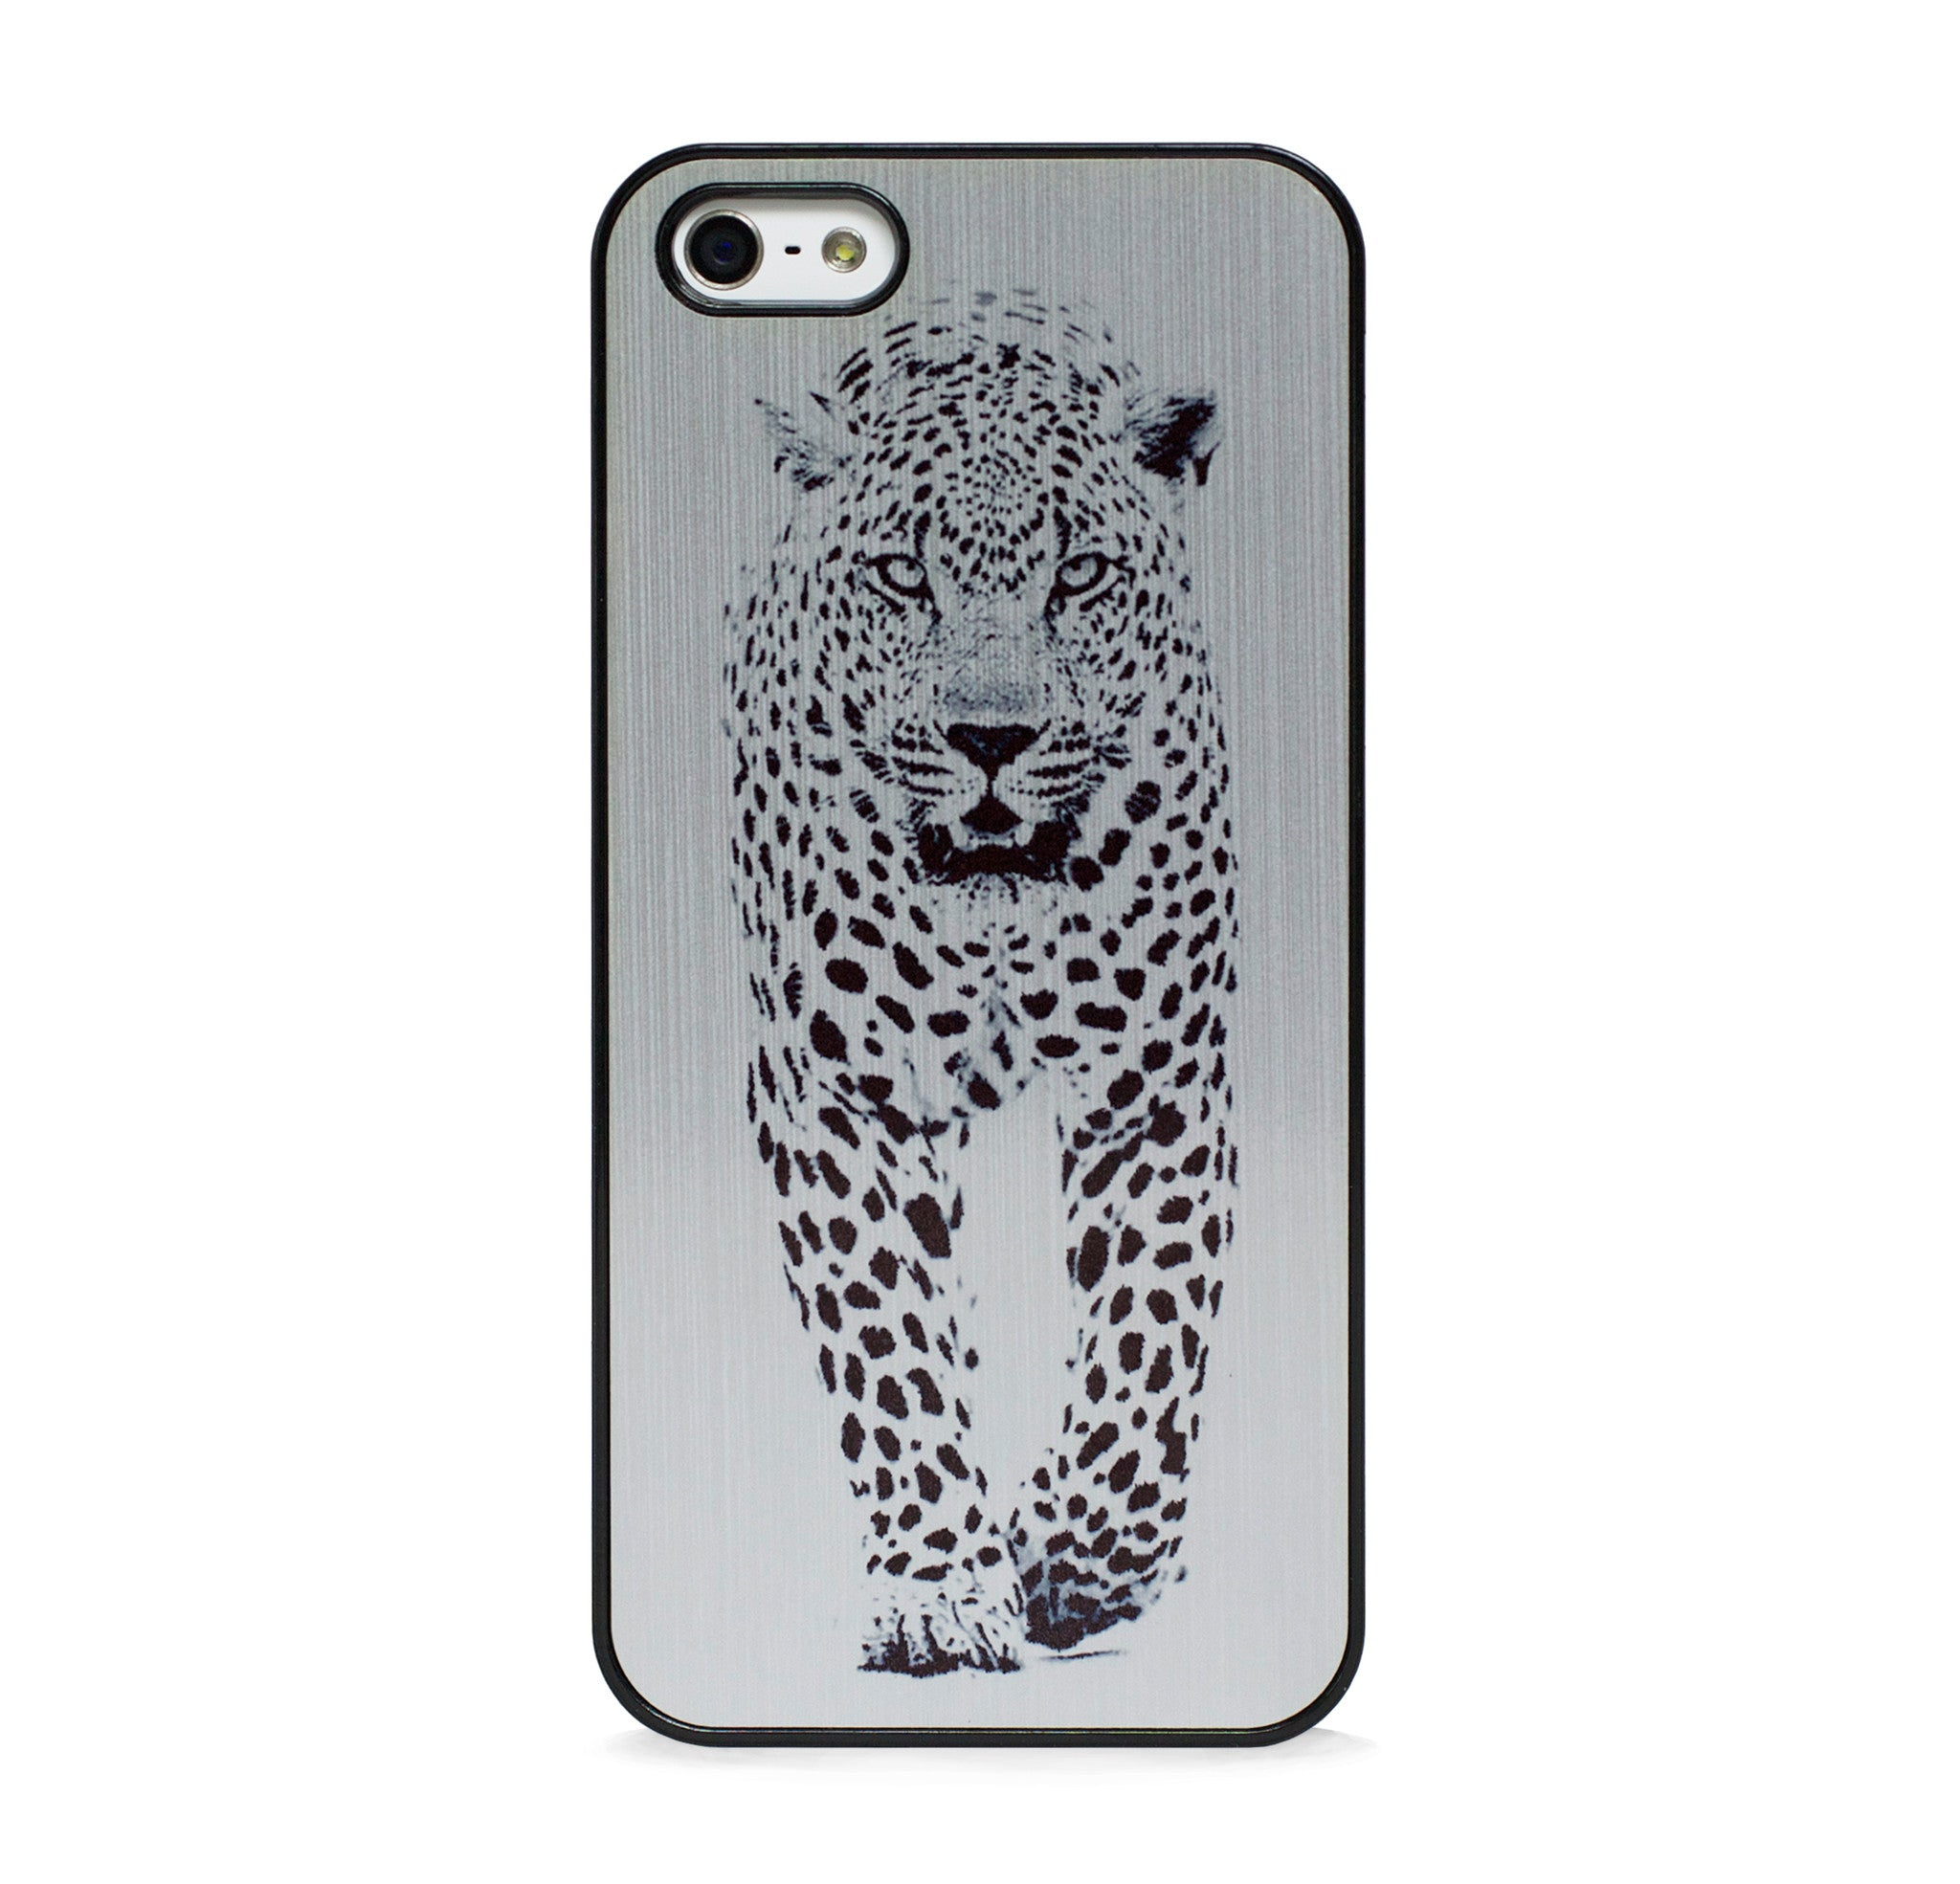 WILD CHEETAH BLACK IN SILVER IPHONE 5/5S CASE